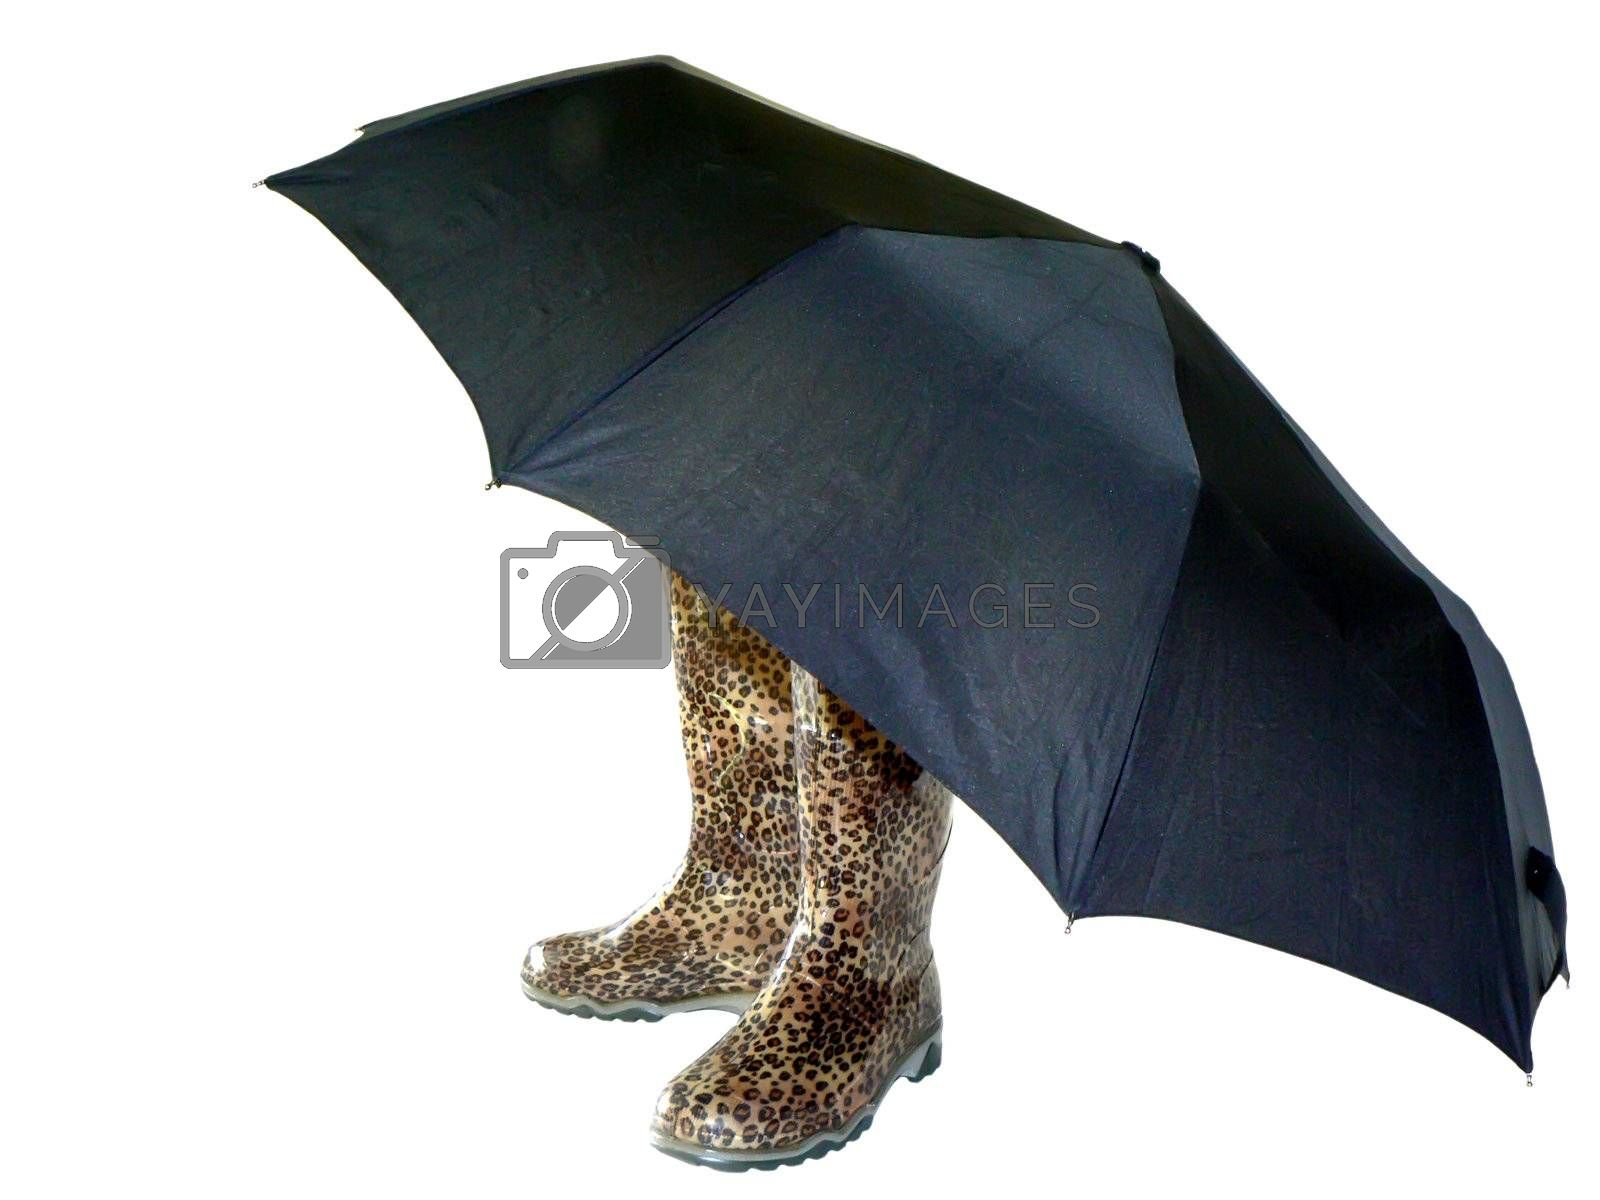 boots and umbrella isolated on white bacground